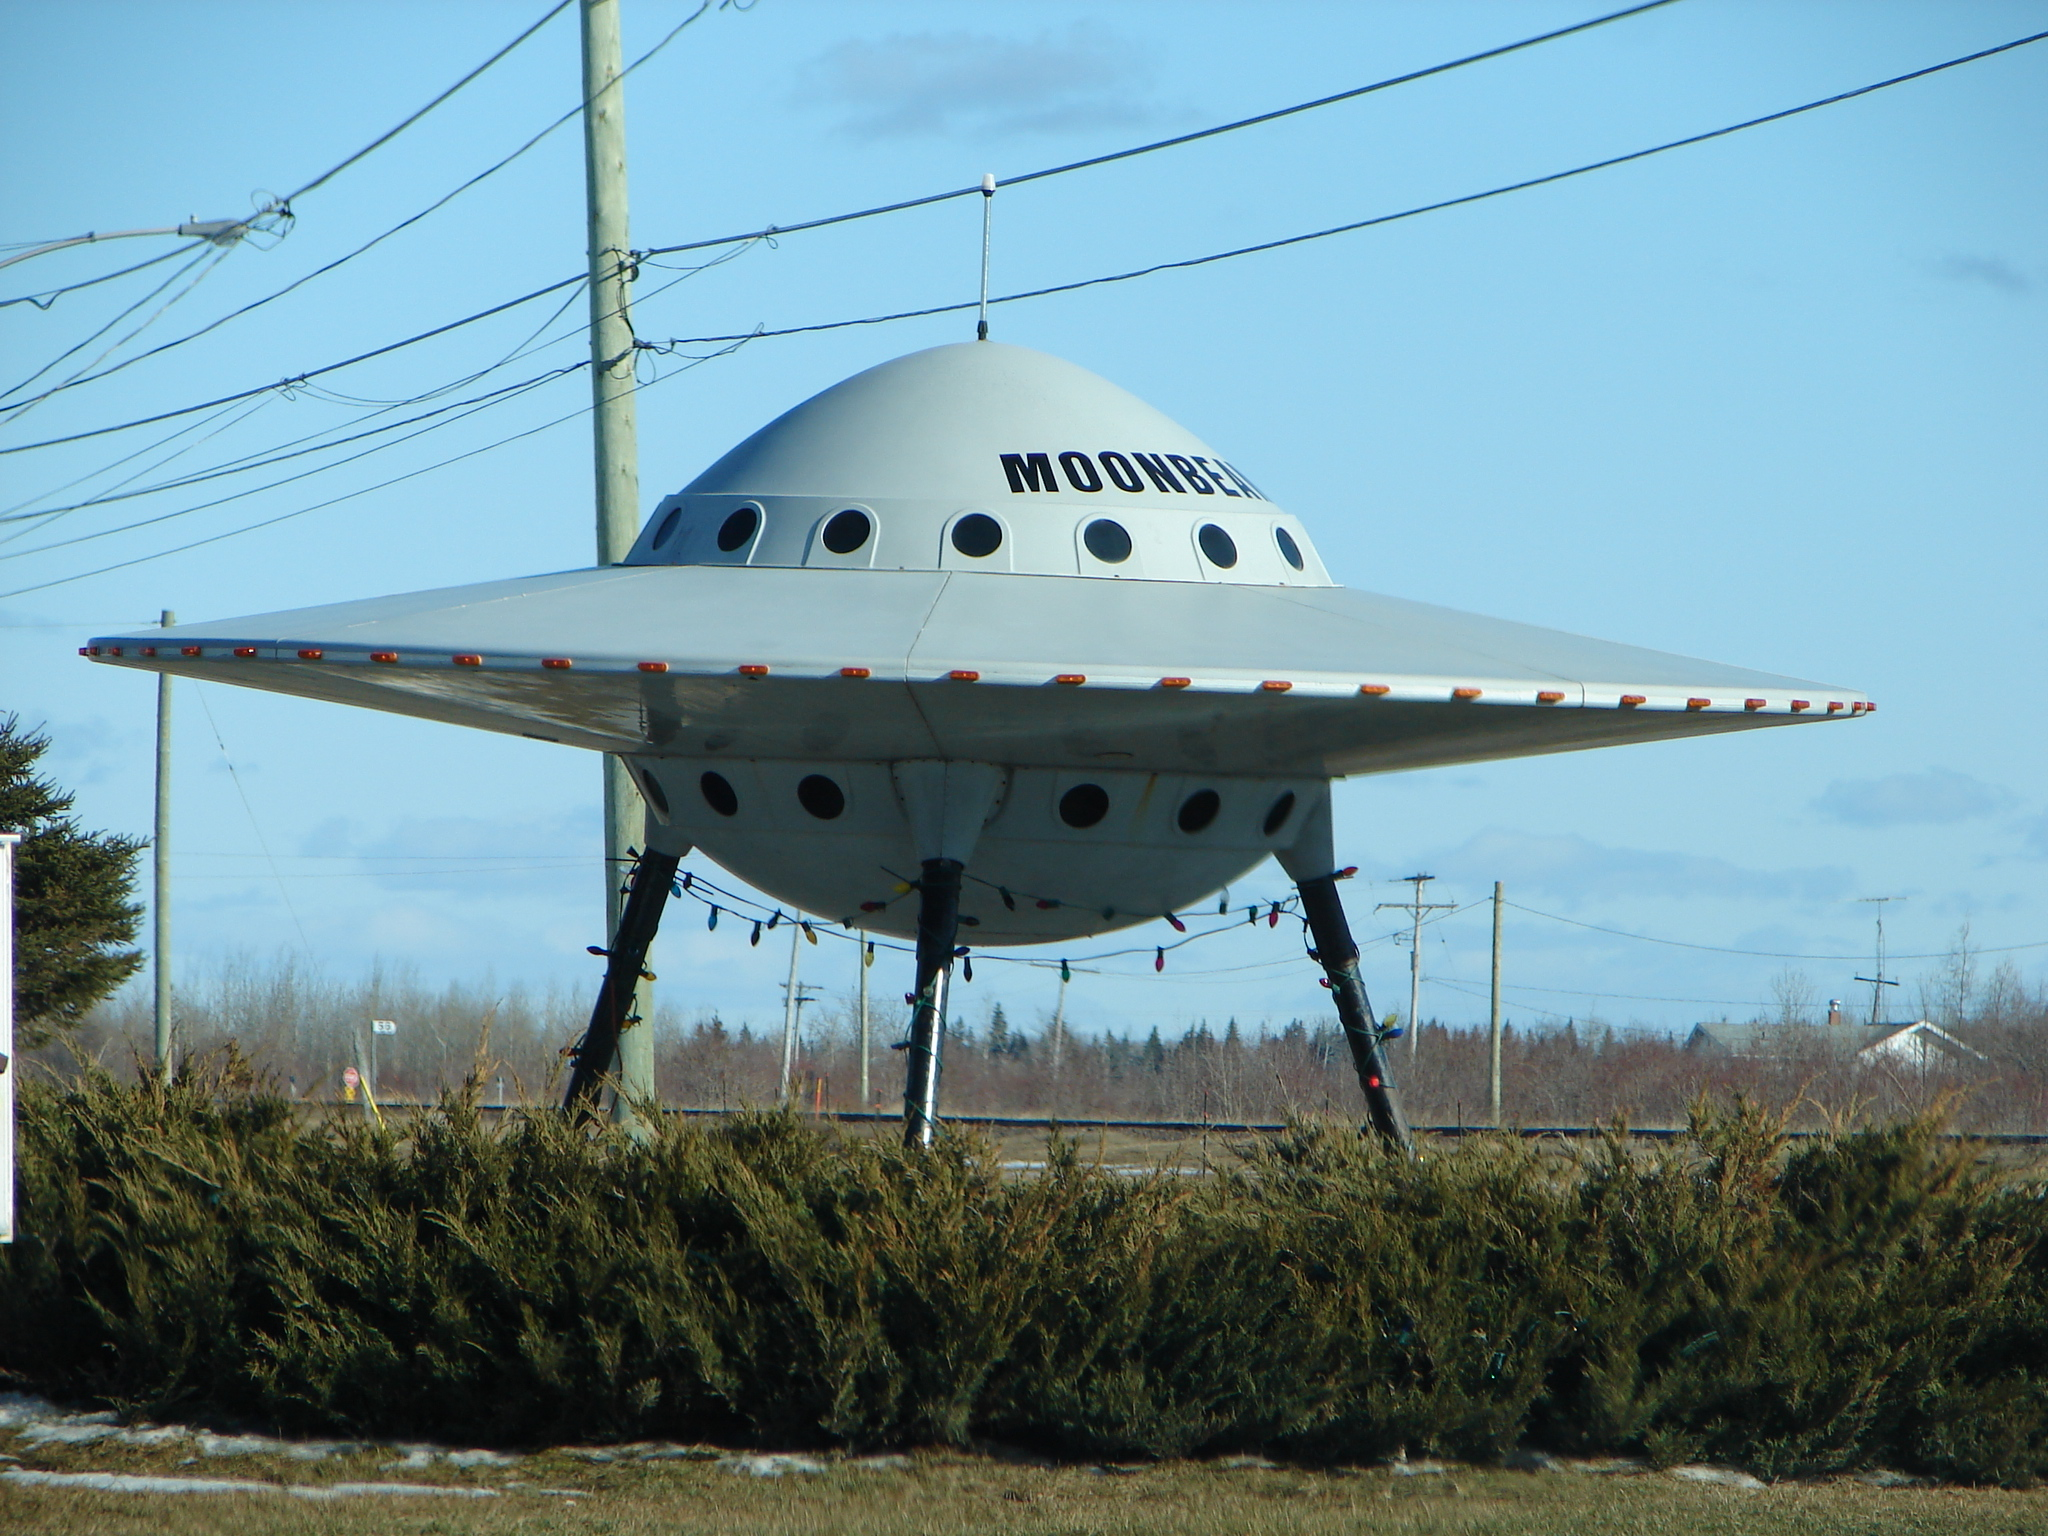 https://upload.wikimedia.org/wikipedia/commons/6/6e/Moonbeam_UFO.JPG